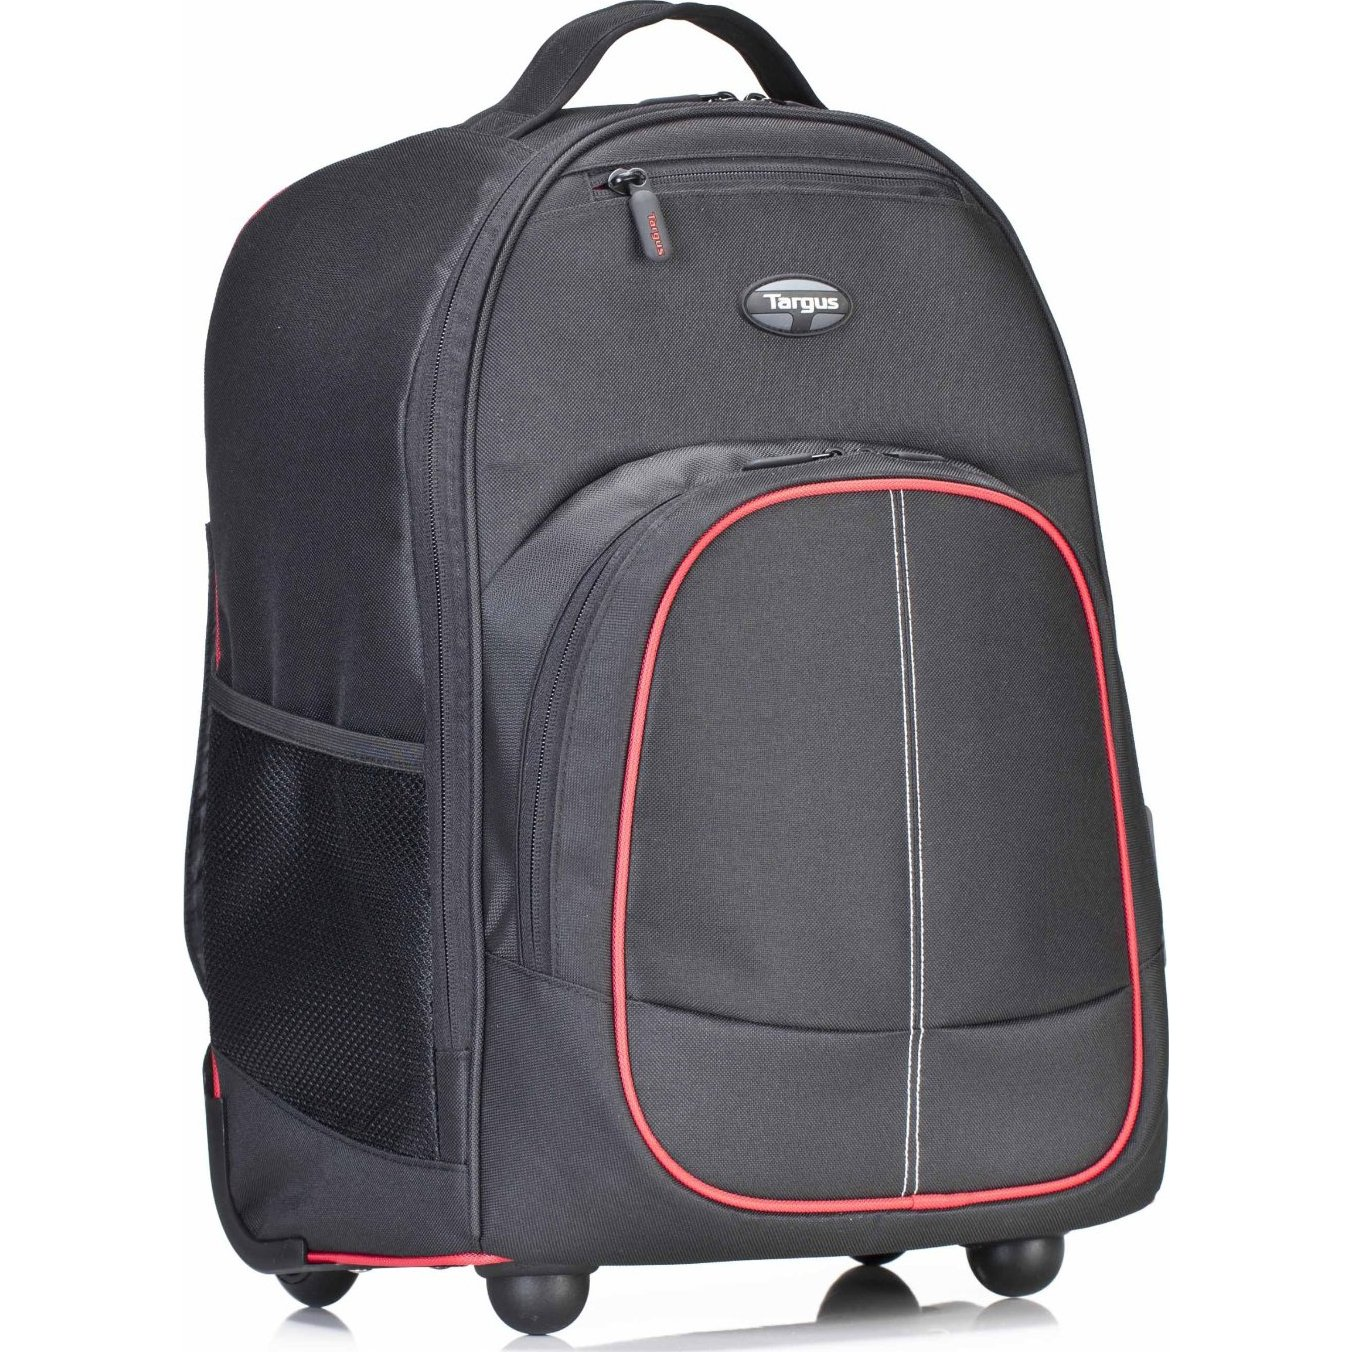 Targus Compact Rolling Backpack for 16-Inch Laptops, Black/Red (TSB75001US)